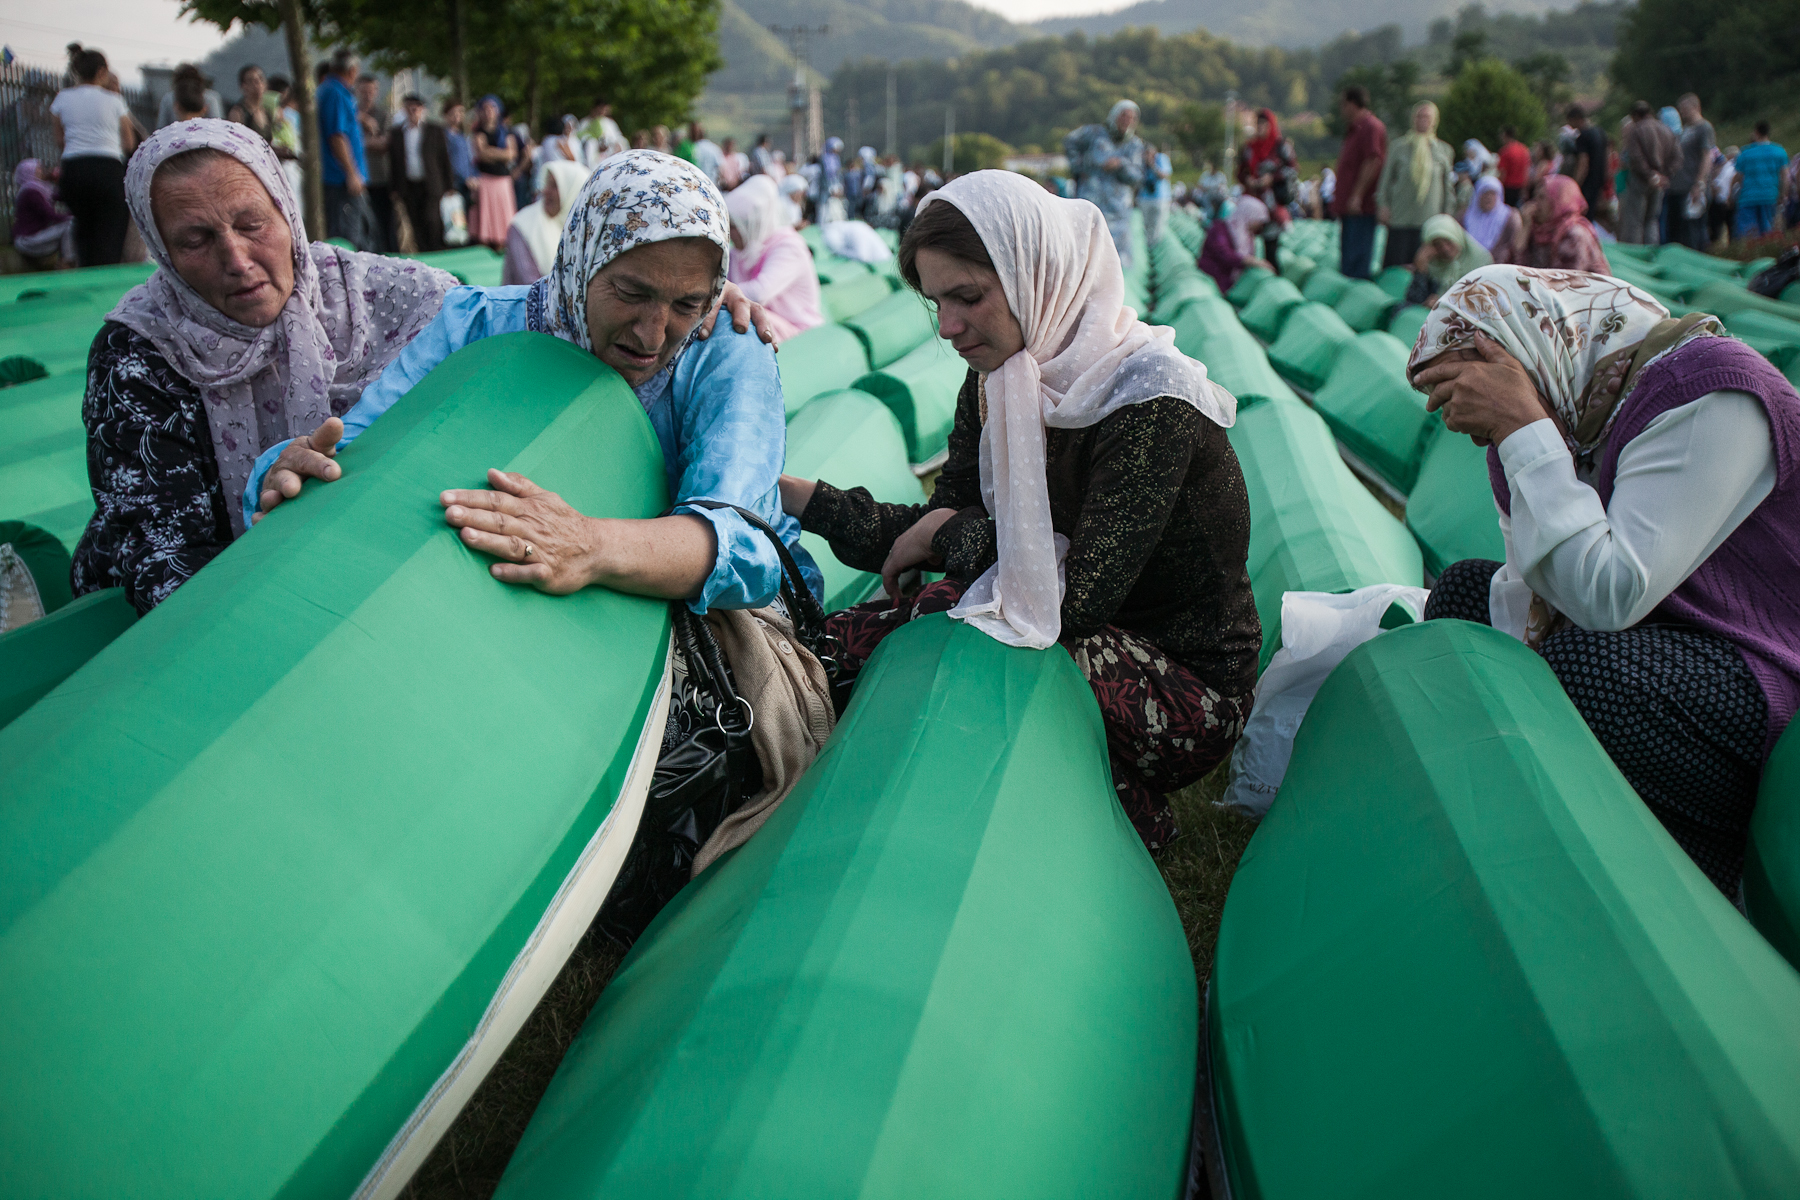 Women mourn among the lines of coffins at the Potocari cemetery in Srebrenica the day before the mass burial of 775 newly identified victims of the 1995 Srebrenica massacre.